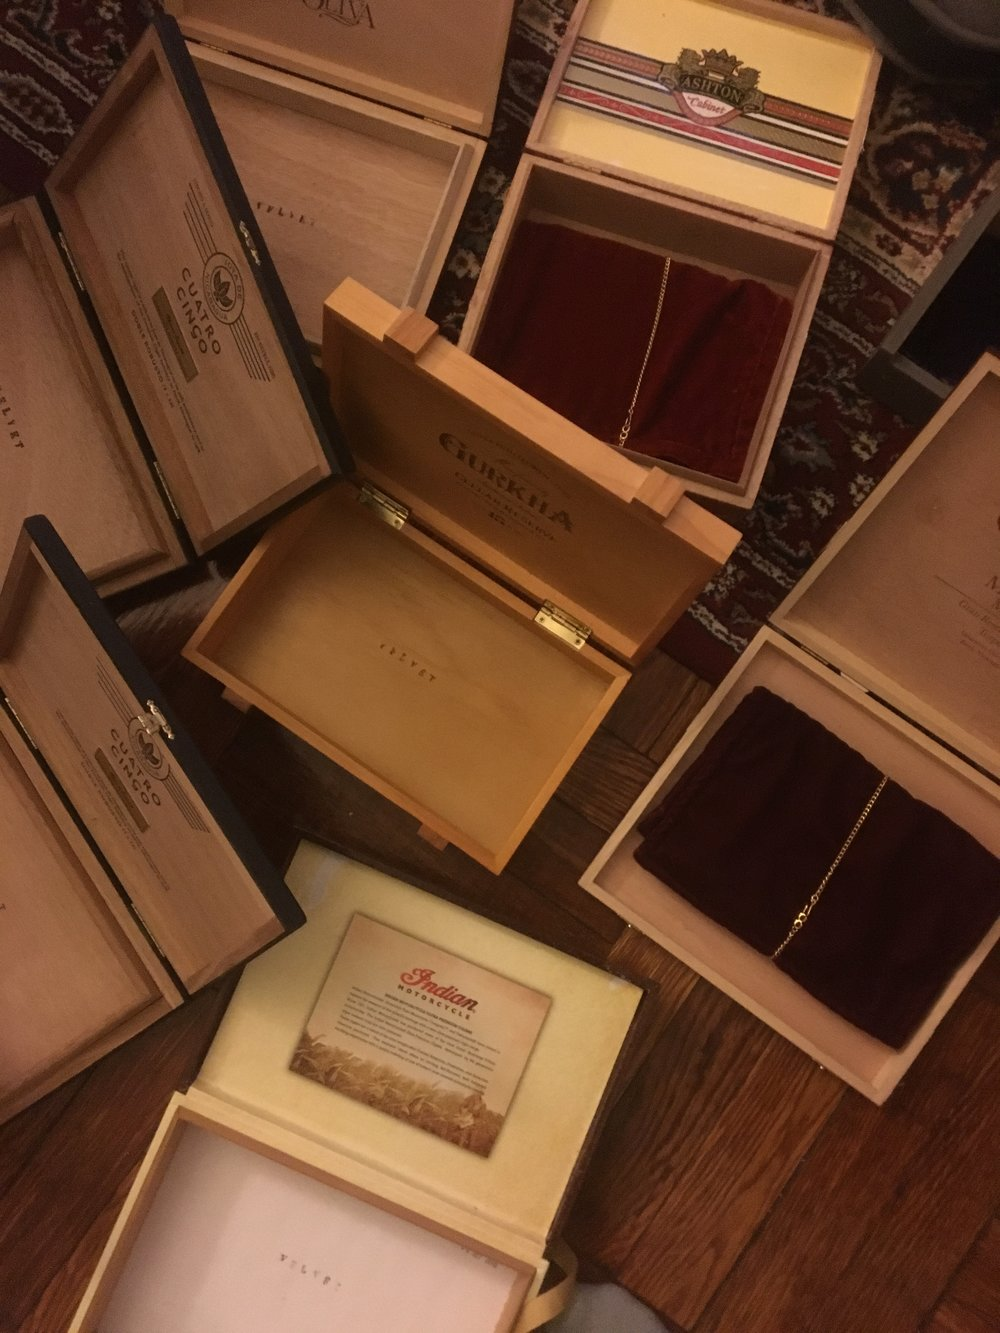 Thank you to everyone who bought VELVET. My apartment floor has been covered with these boxes and now they're mostly gone...can't help but feel pretty attached to them. Hope you're listening and getting lost in it...